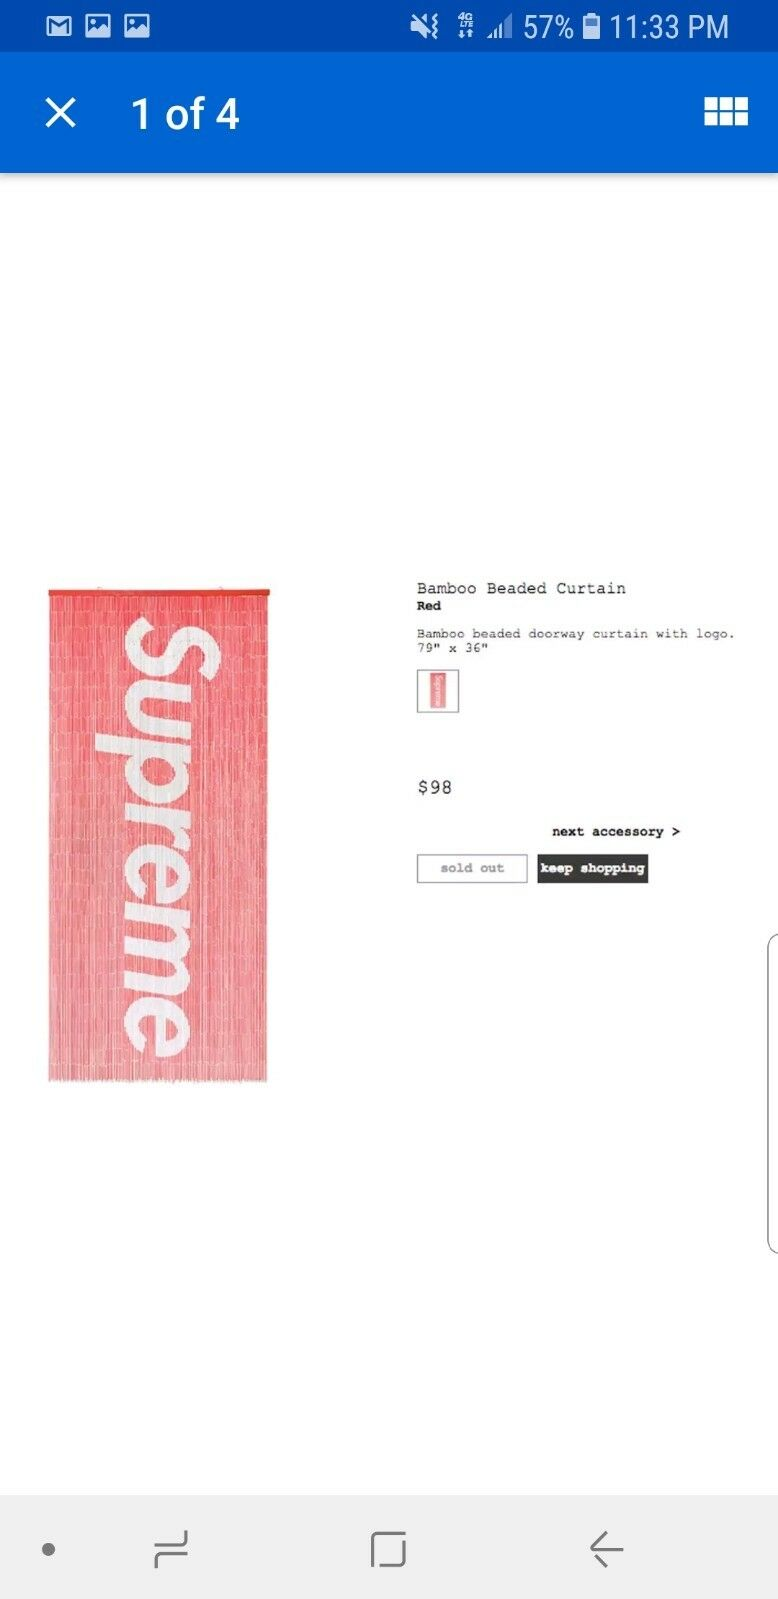 SUPREME BAMBOO BEADED CURTAIN RED SS17 BOX LOGO For Sale Online